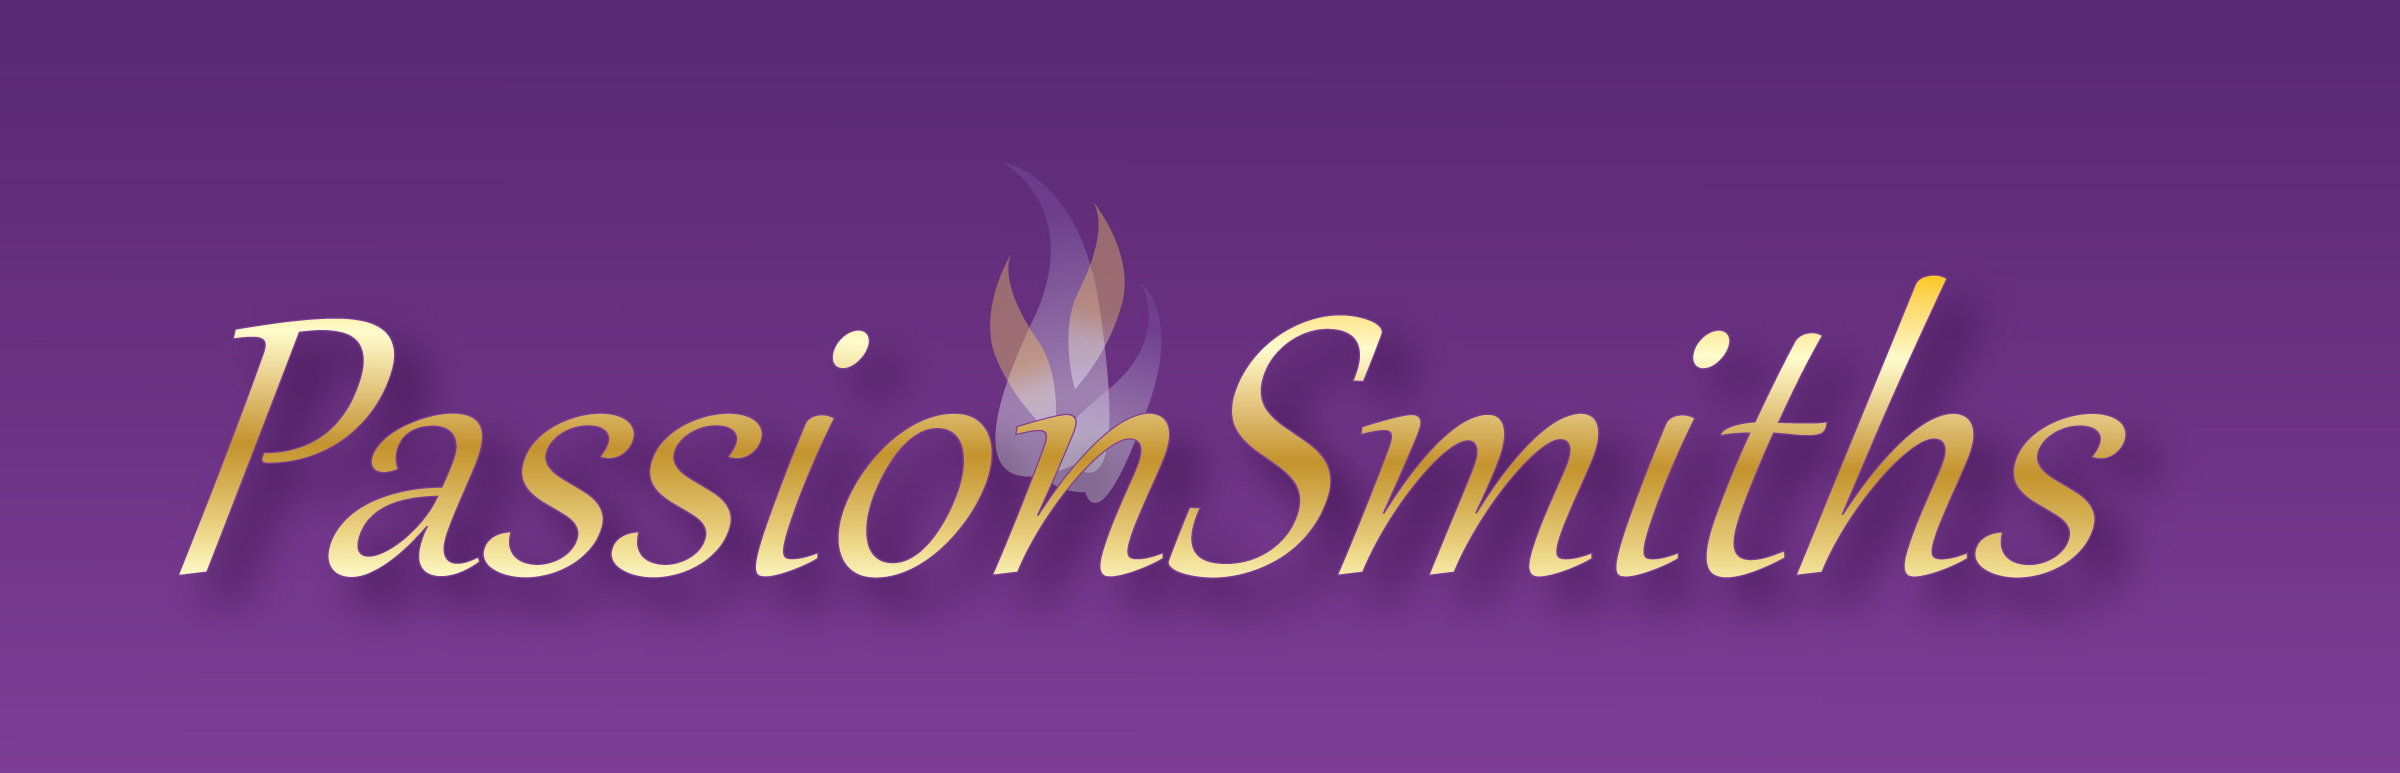 dating experts PassionSmiths logo